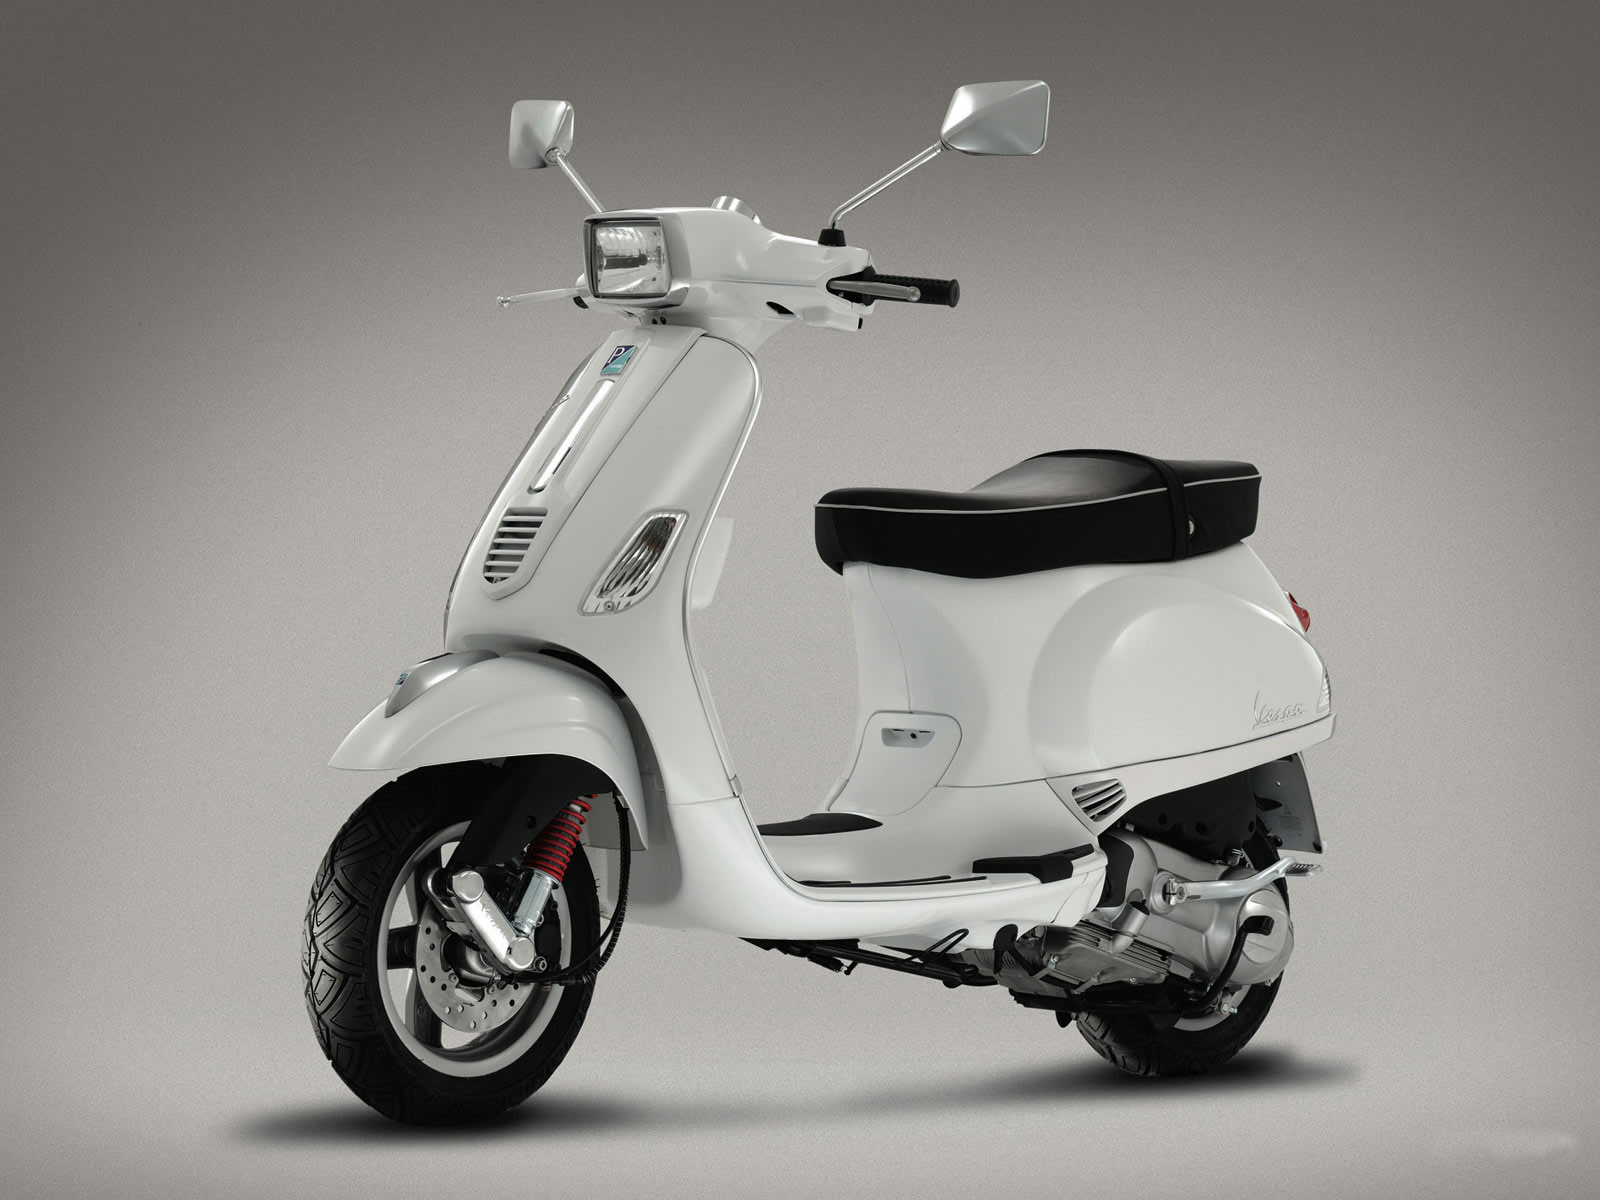 2008 vespa s 125 scooter pictures accident lawyers info. Black Bedroom Furniture Sets. Home Design Ideas